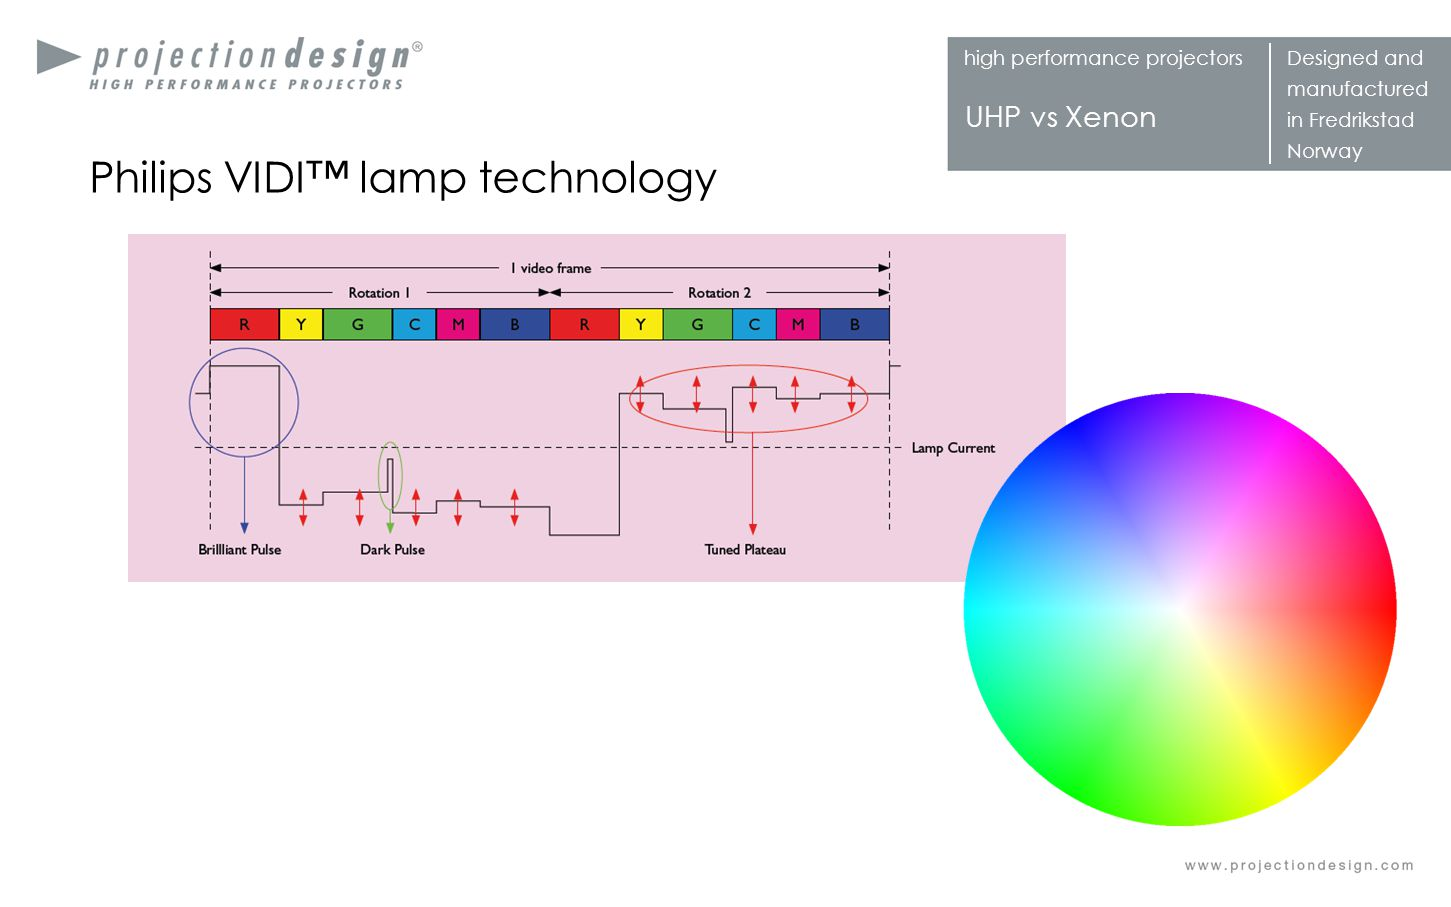 high performance projectorsDesigned and manufactured in Fredrikstad Norway UHP vs Xenon Philips VIDI lamp technology